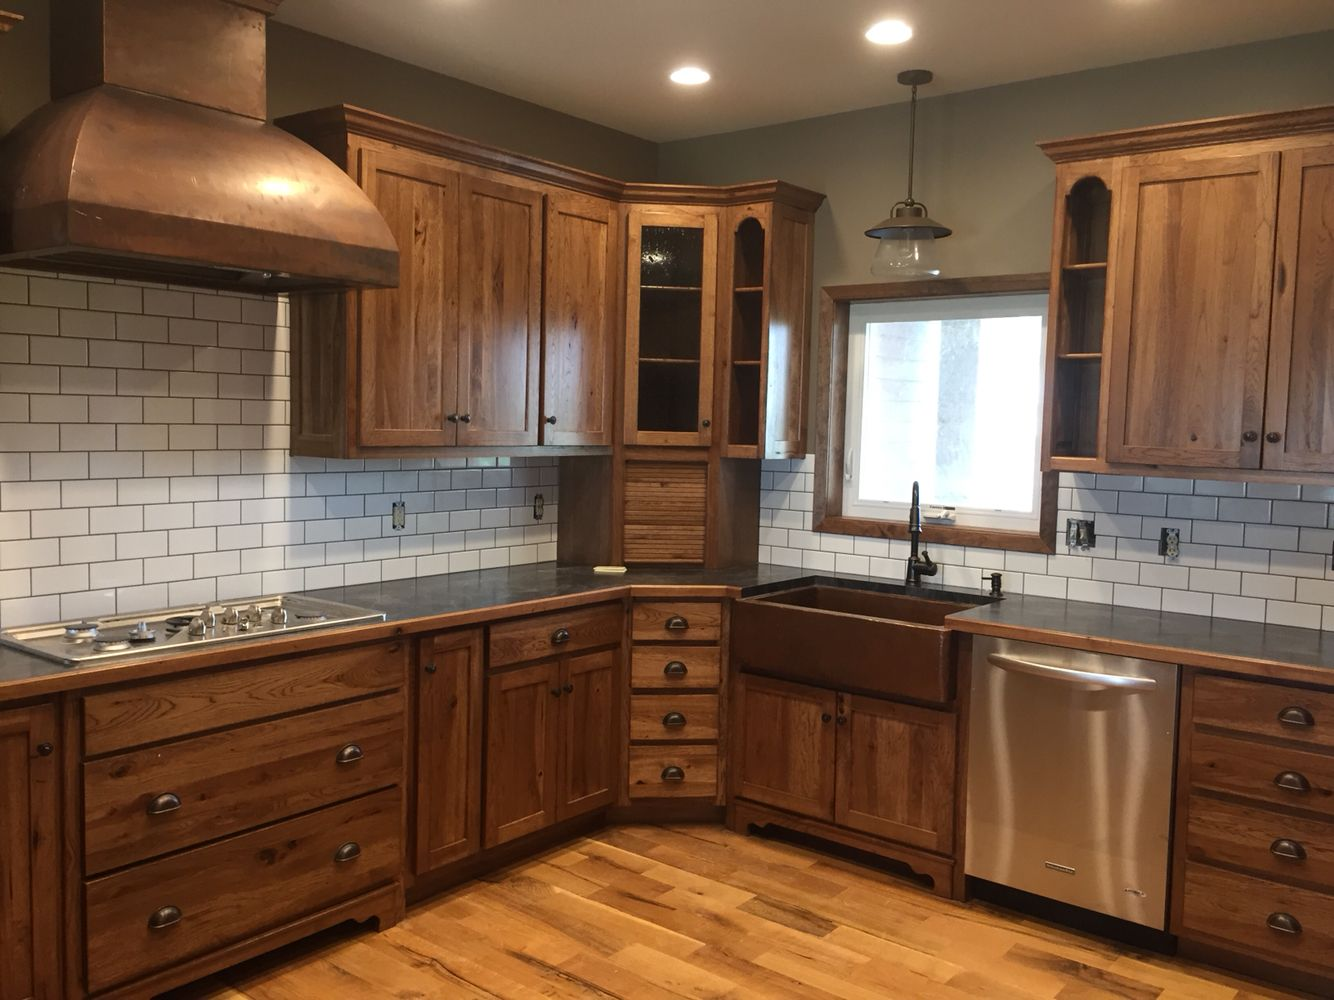 White Subway Tile Dark Grout With Stained Hickory Cabinets Copper Sink And Hood Lovin Hickory Kitchen Cabinets Stained Kitchen Cabinets New Kitchen Cabinets